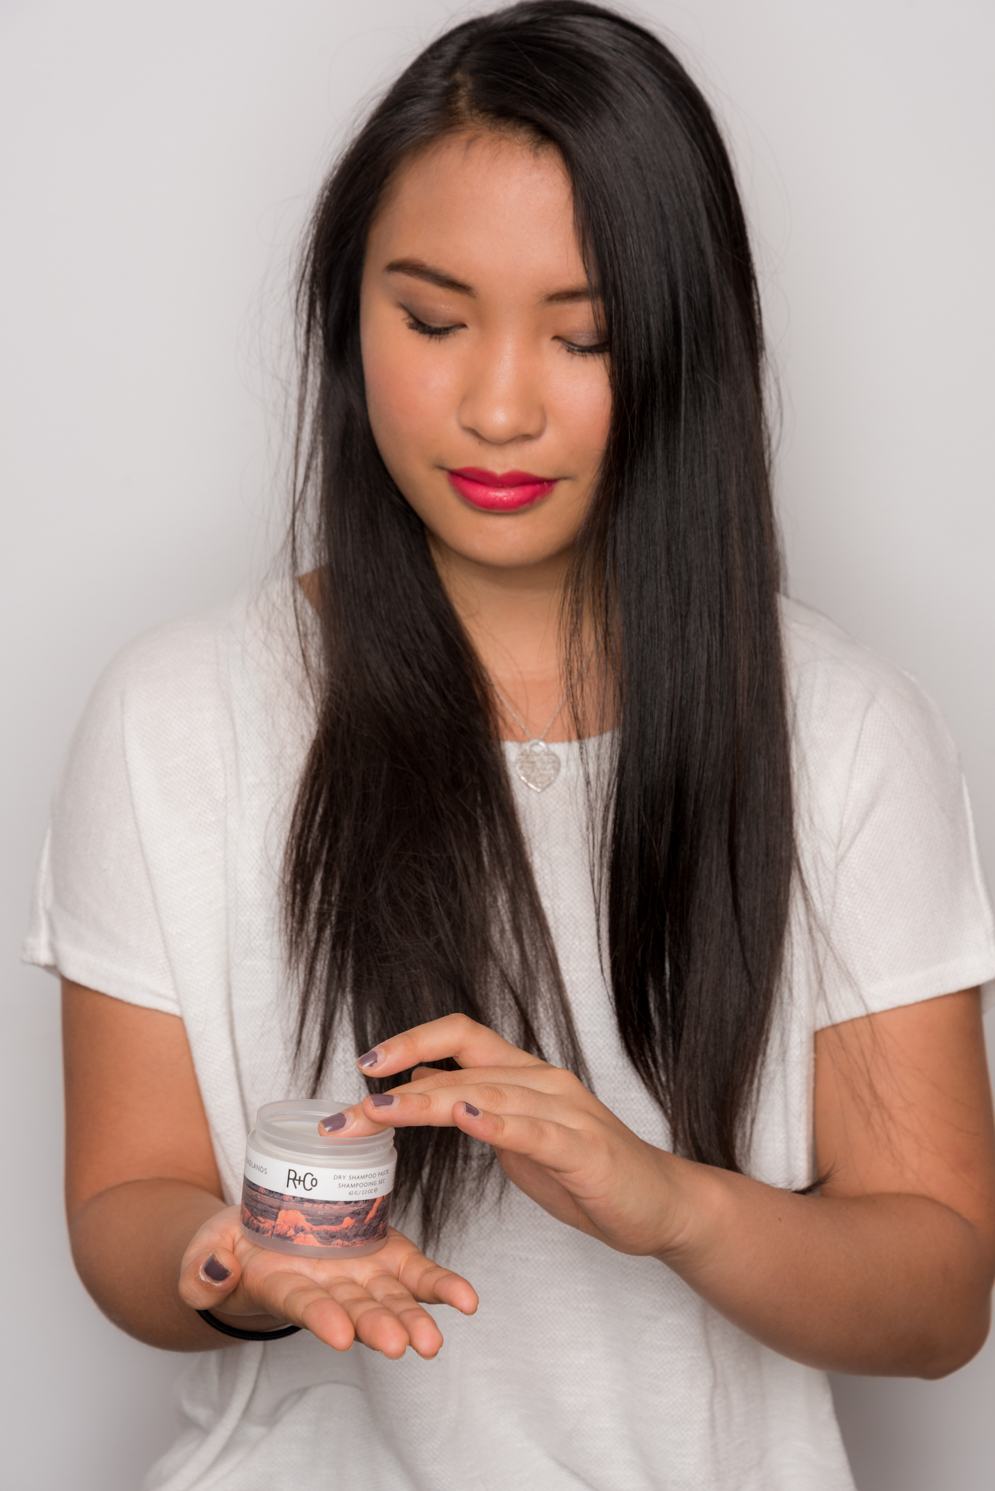 ROCK MAMA NYC LIFESTYLE BLOG - HOW TO USE DRY SHAMPOO